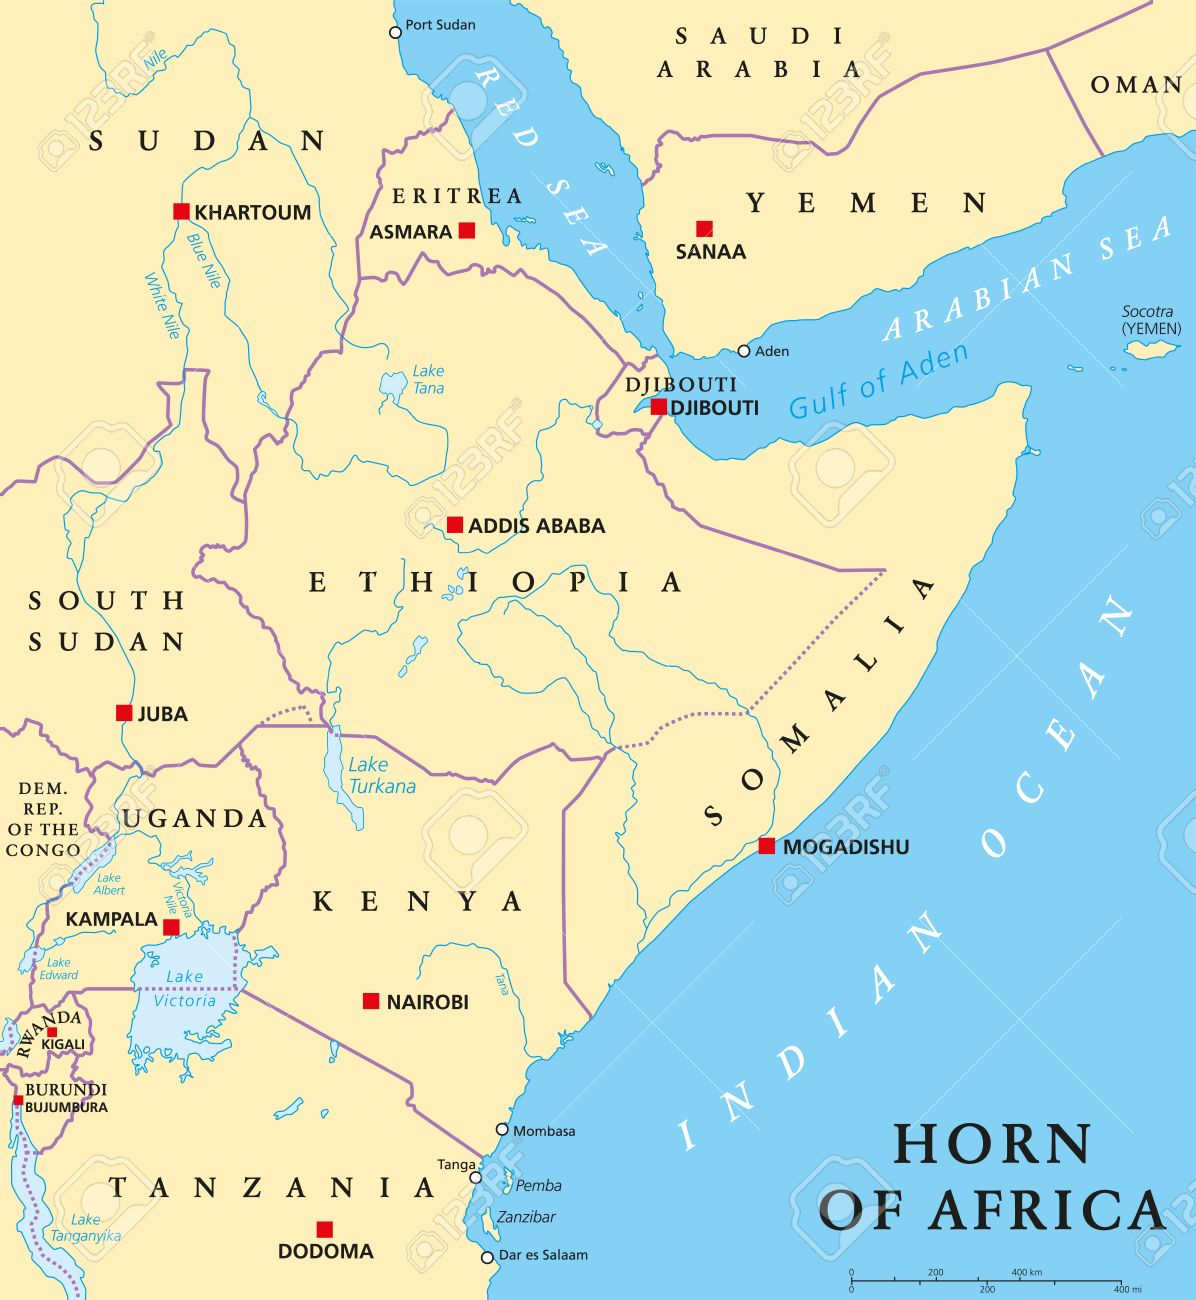 Horn Of Africa Peninsula Political Map With Capitals National - Important rivers in africa